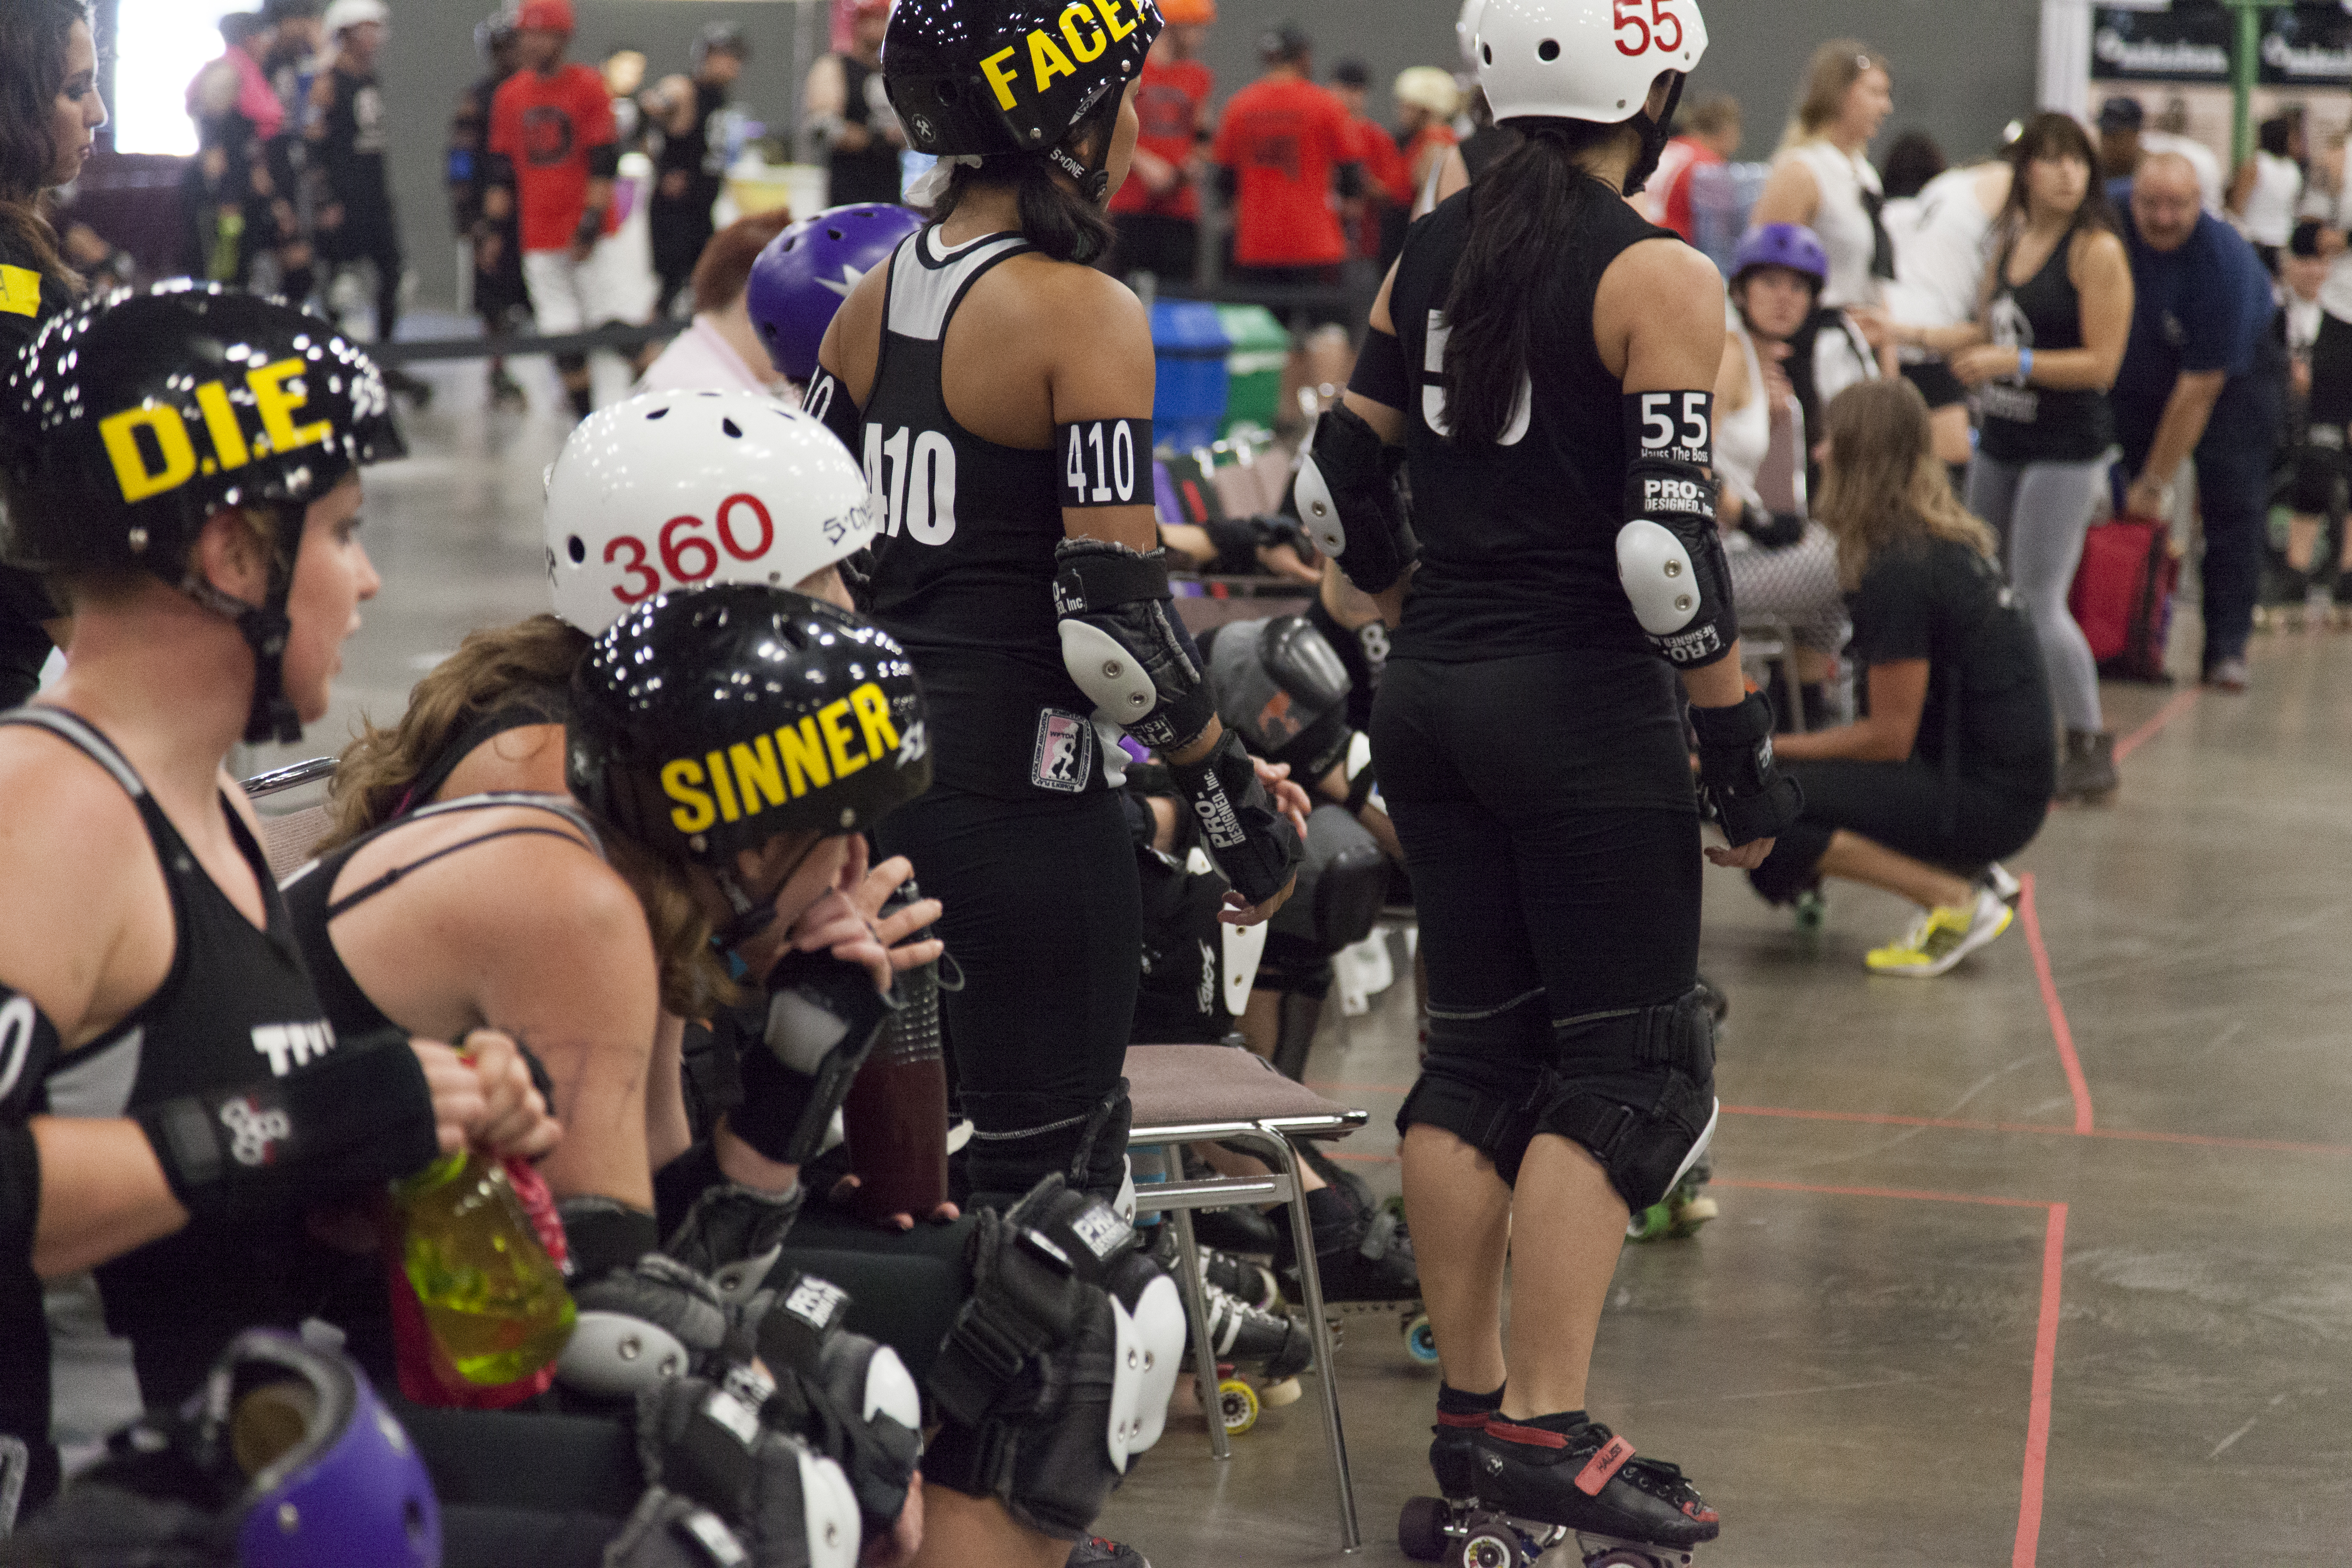 The Bar Belles watch anxiously during the bout.